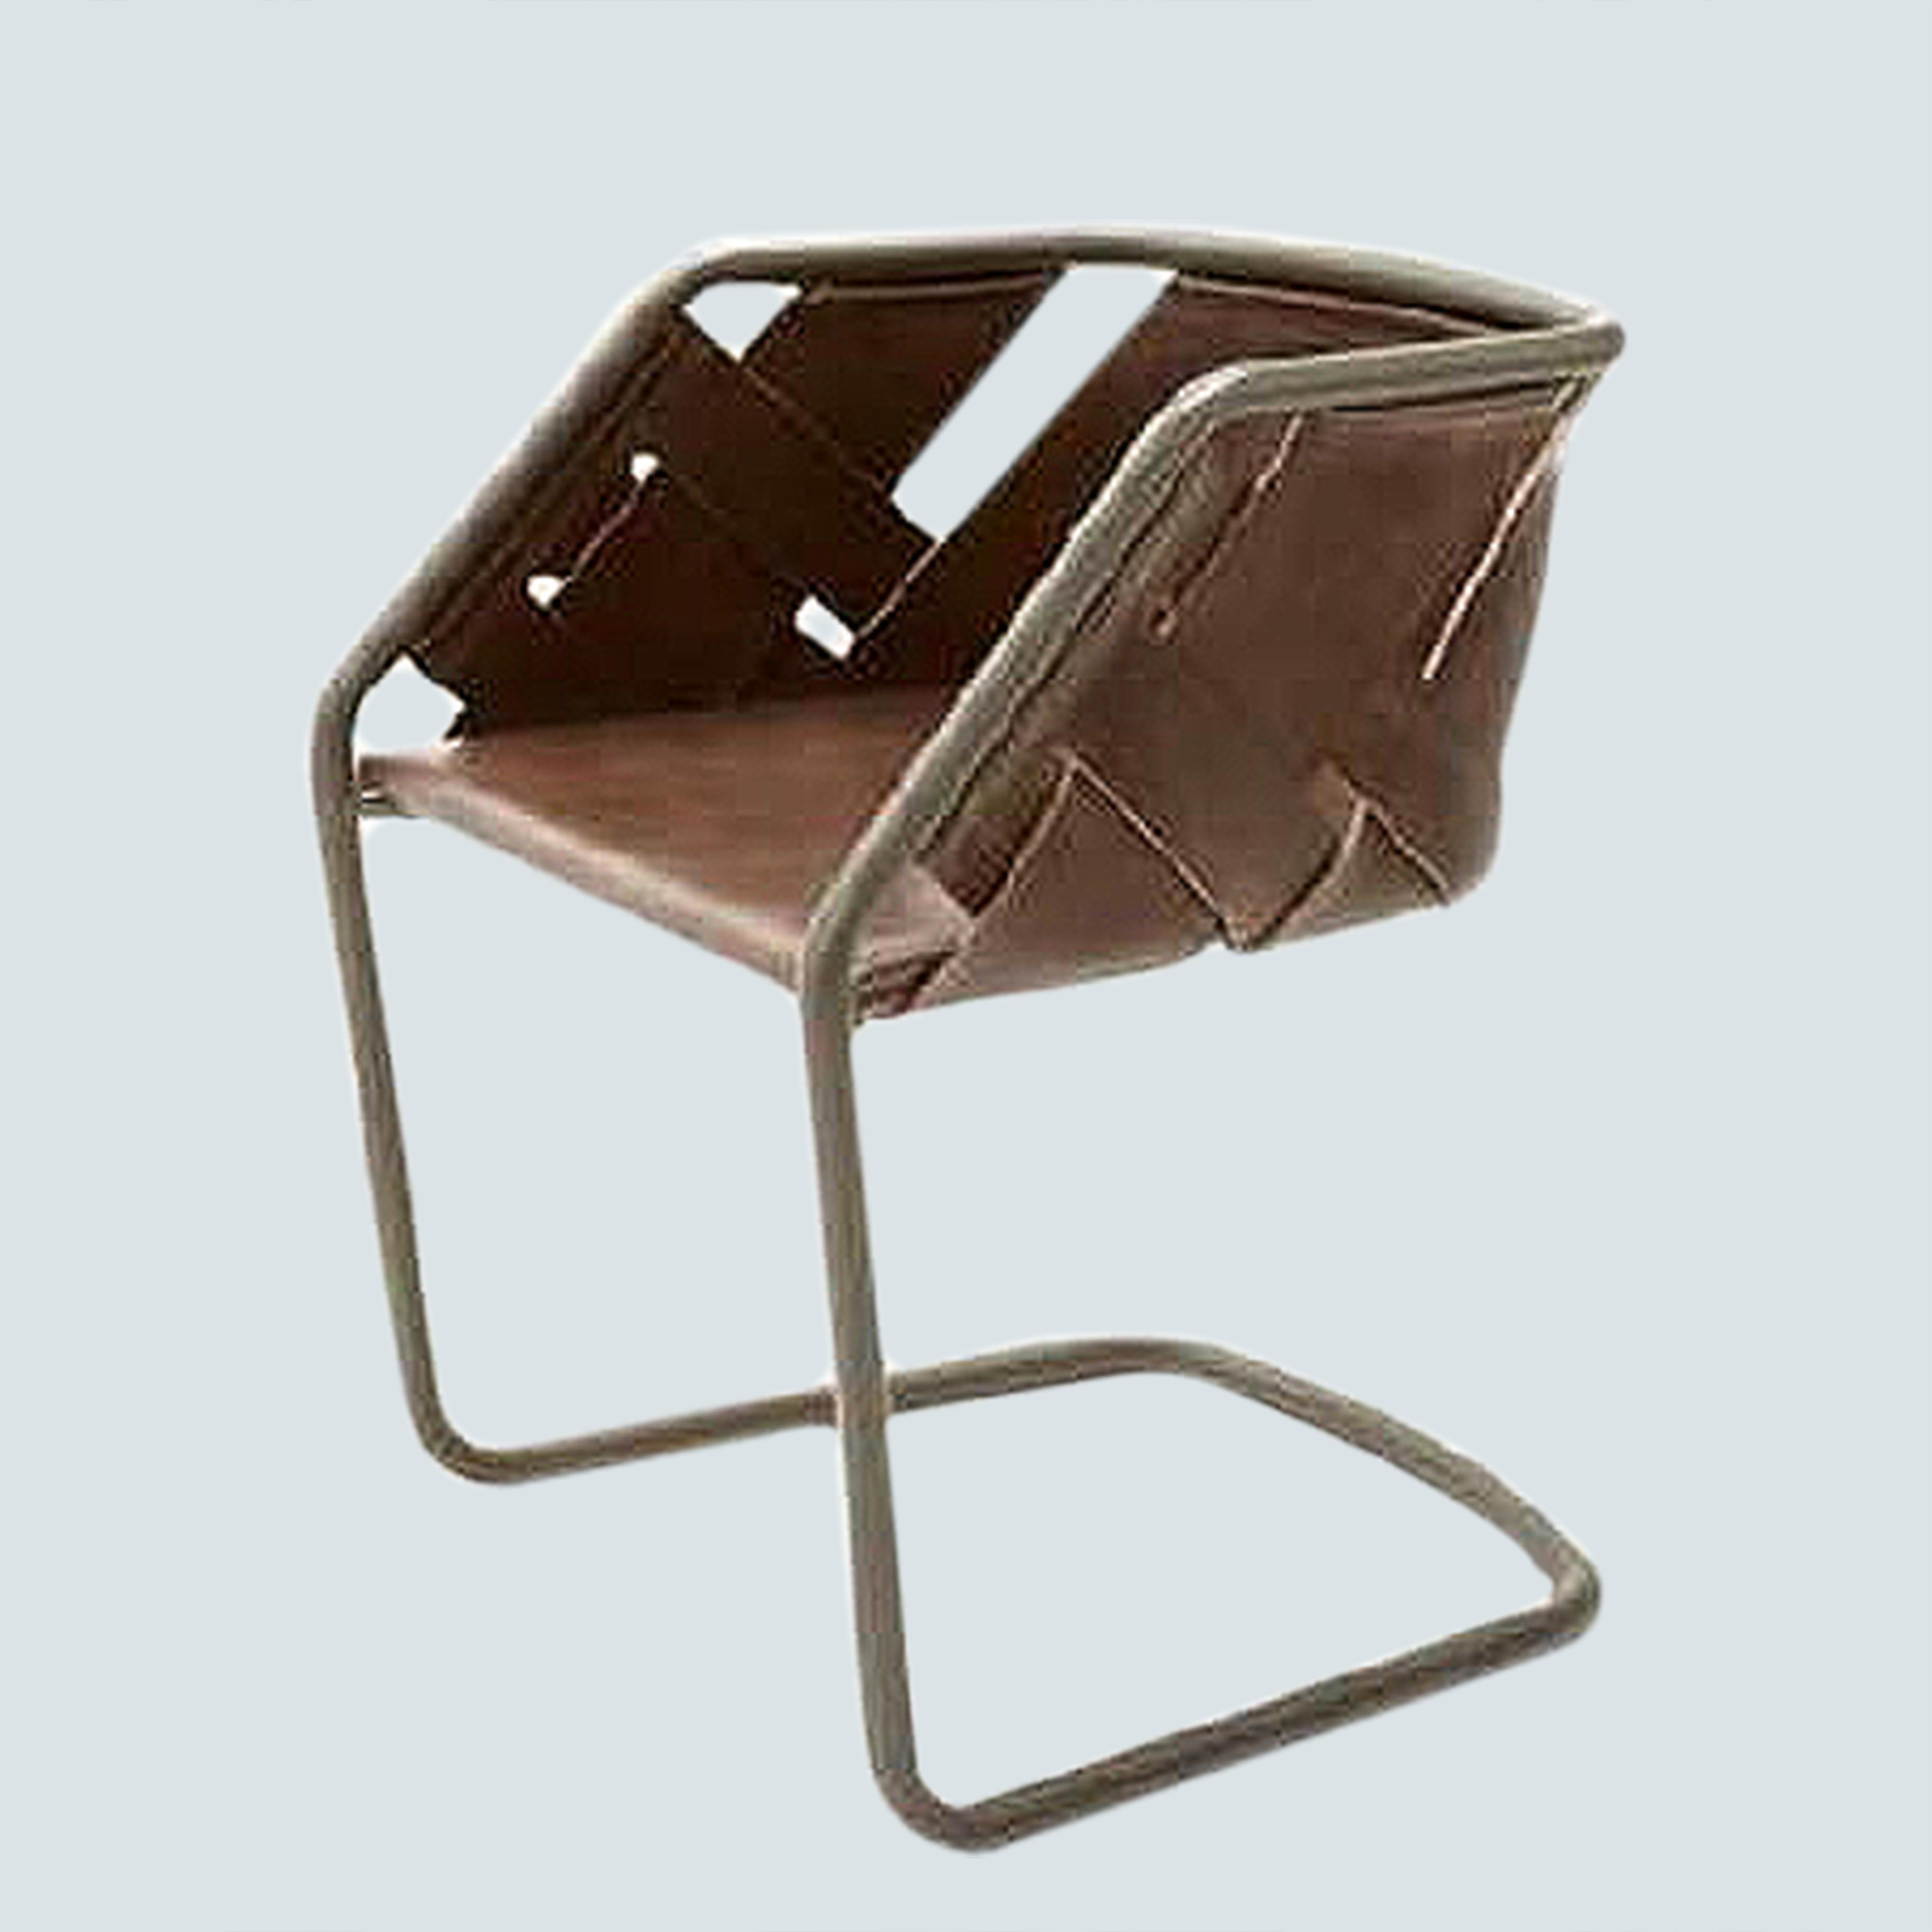 Handmade Strip Armchair, Contemporary accent arm upholestered chair, Café Lounge Chair, Fauteuil for for Home Office Living Room Bedroom Waiting Room Reception Apartment Dorms